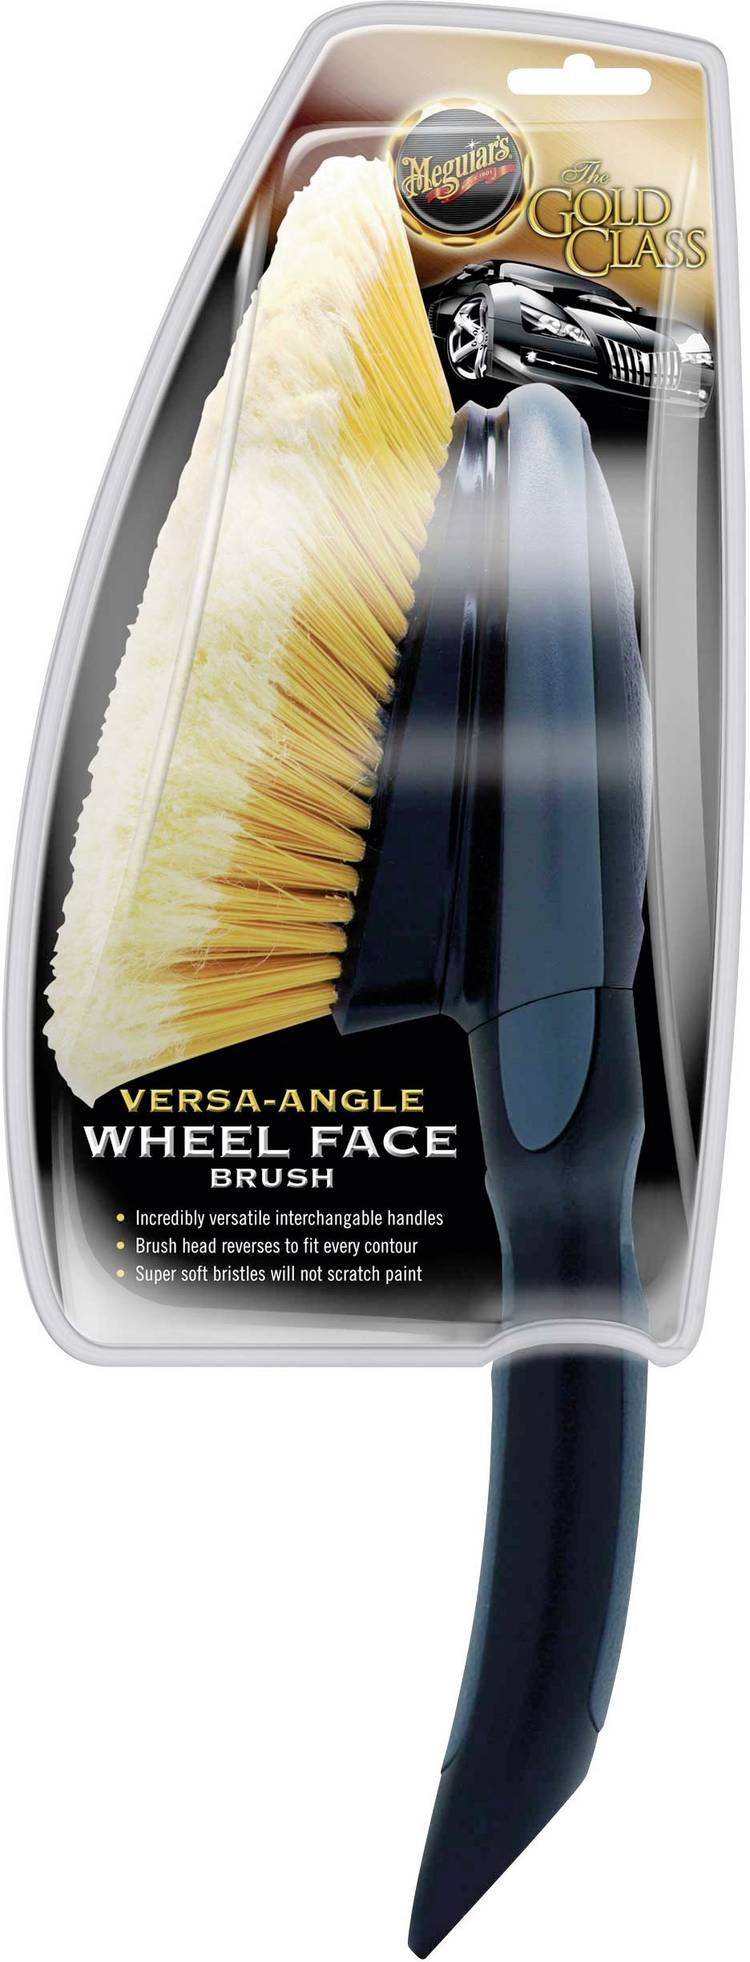 Image of Meguiars X1025 Versa Angle Wheel Face Brush velgborstel 1 stuks